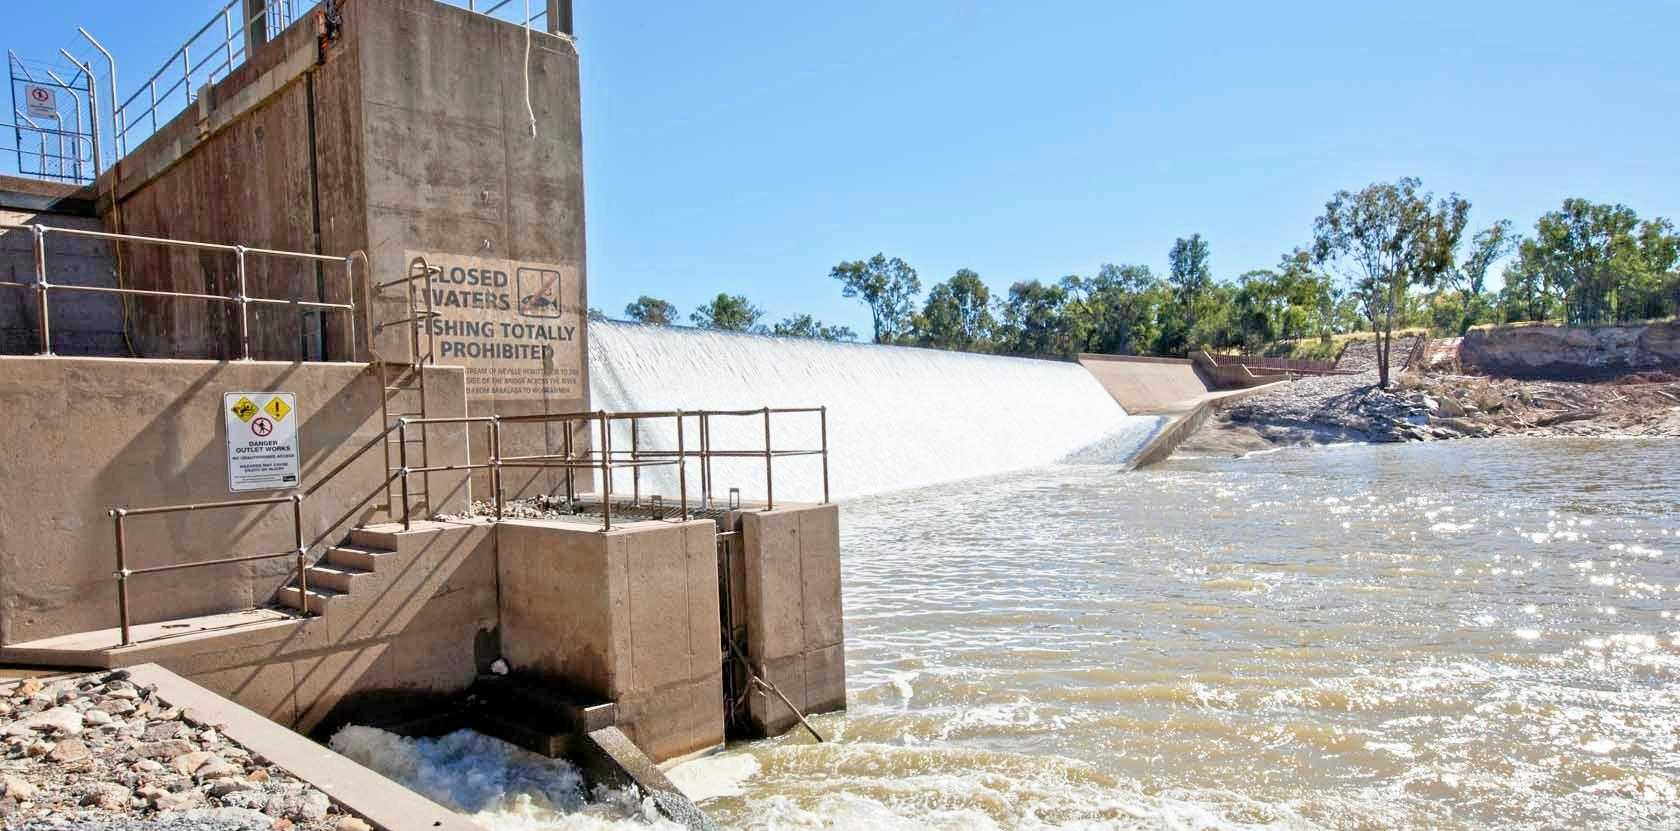 The Queensland Government is encouraging regional Queenslanders to be aware of safety risks surrounding low-level dams..